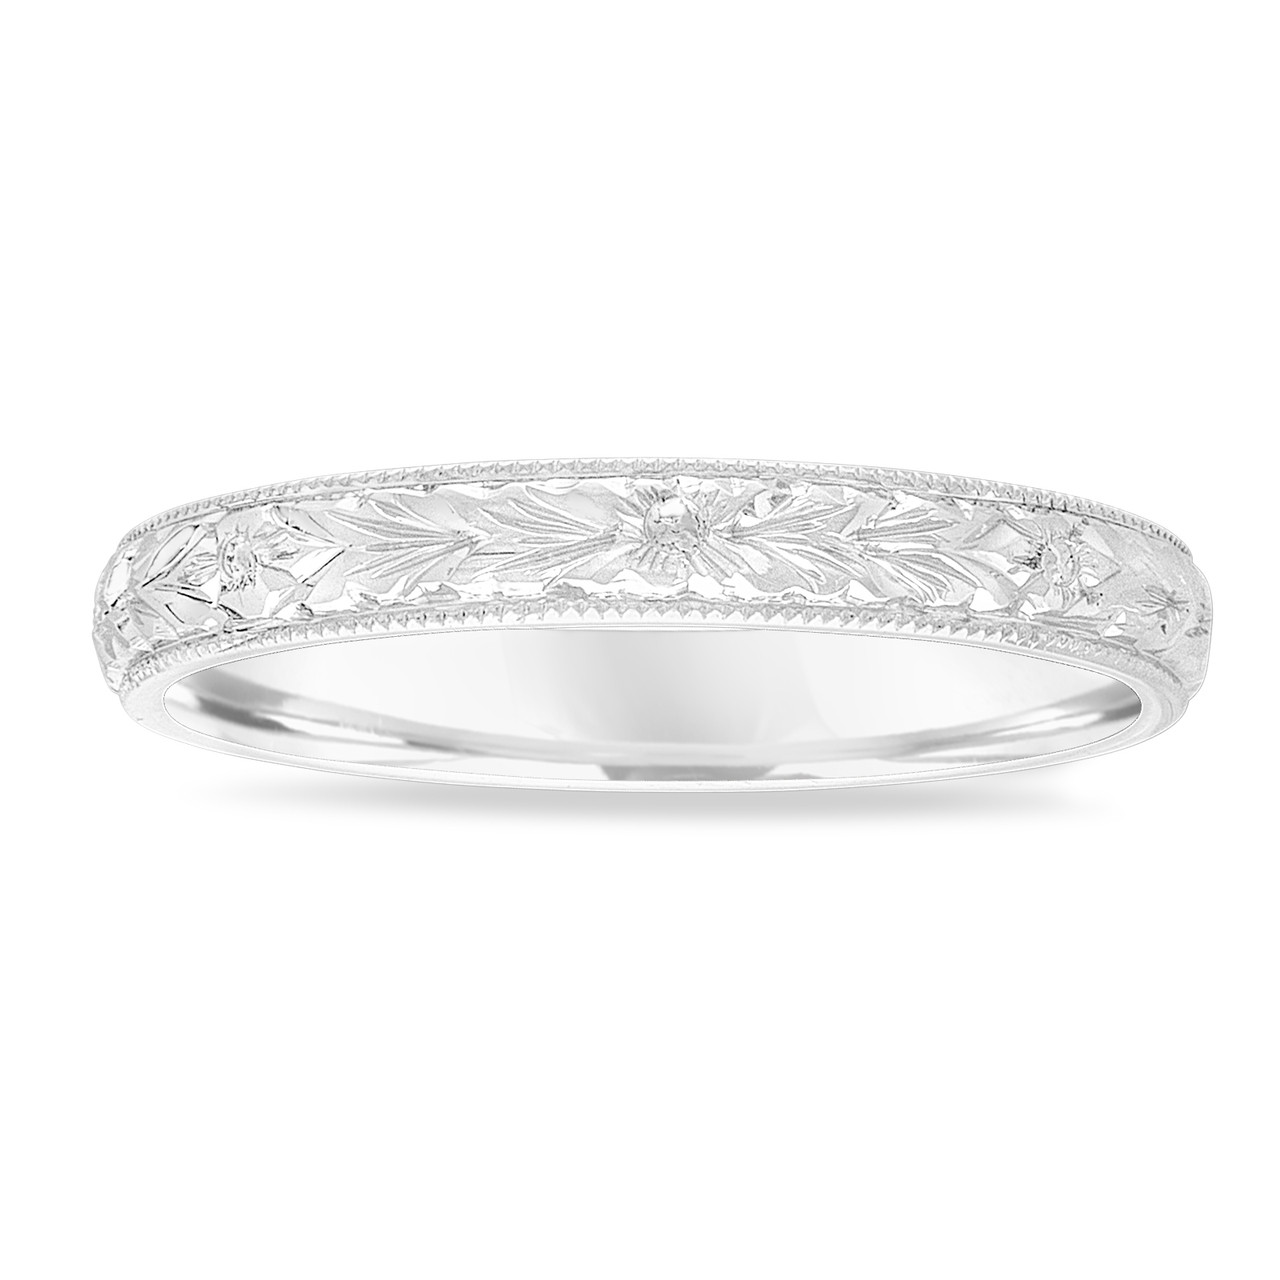 This is a photo of Hand Engraved Wedding Band 47K White Gold, Vintage Wedding Ring